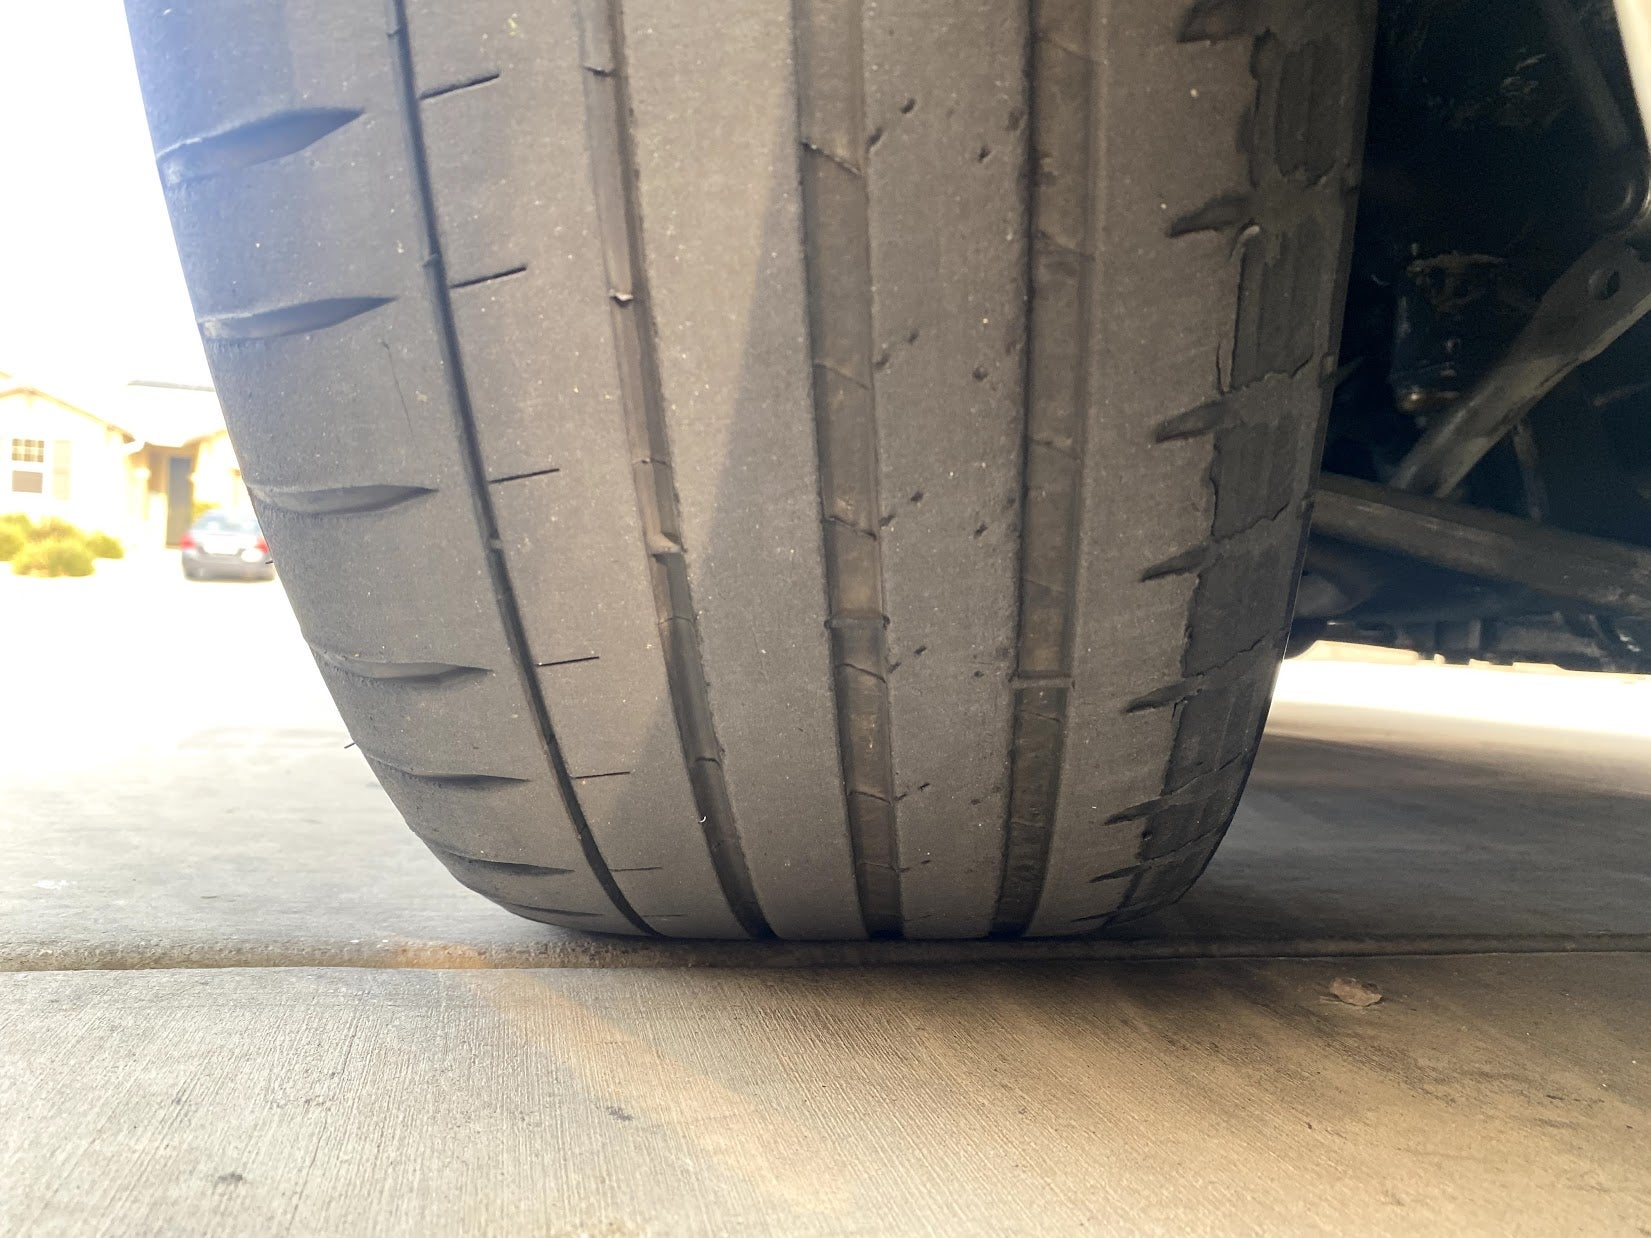 Front shot of delaminated Michelin tire